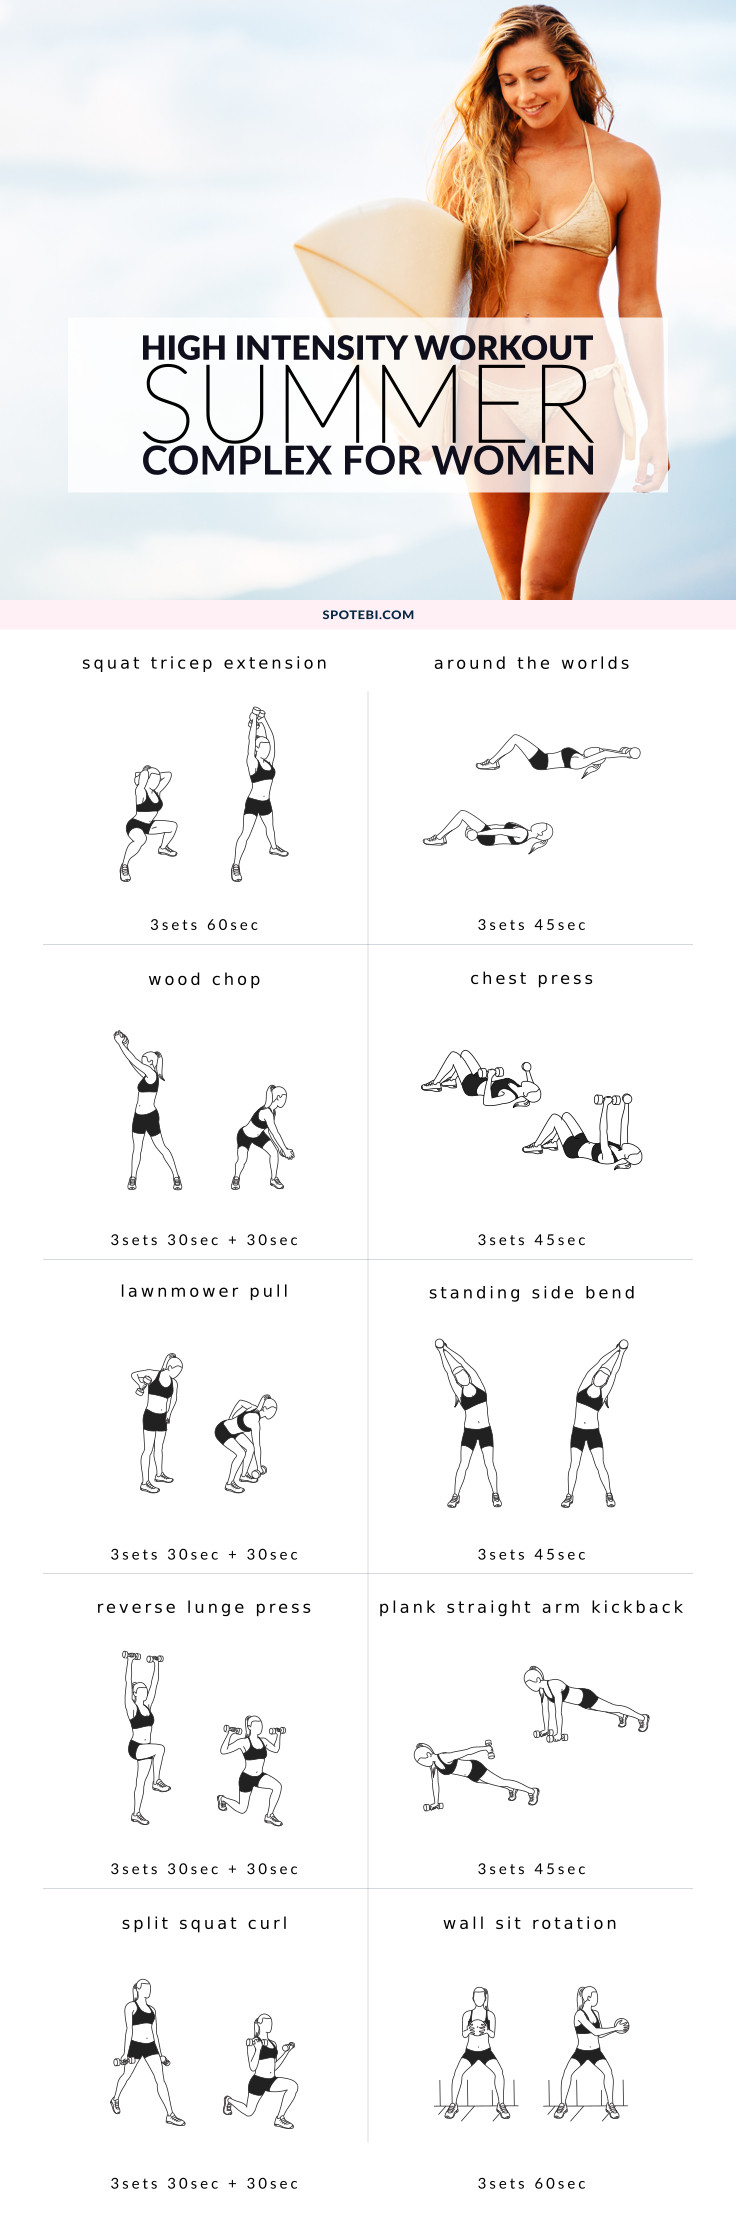 Sculpt, tone and tighten your whole body at home with this Summer Body Complex for women. A high intensity circuit designed to improve your cardiovascular endurance and speed up your metabolism in just 30 minutes! https://www.spotebi.com/workout-routines/home-summer-body-complex-women/